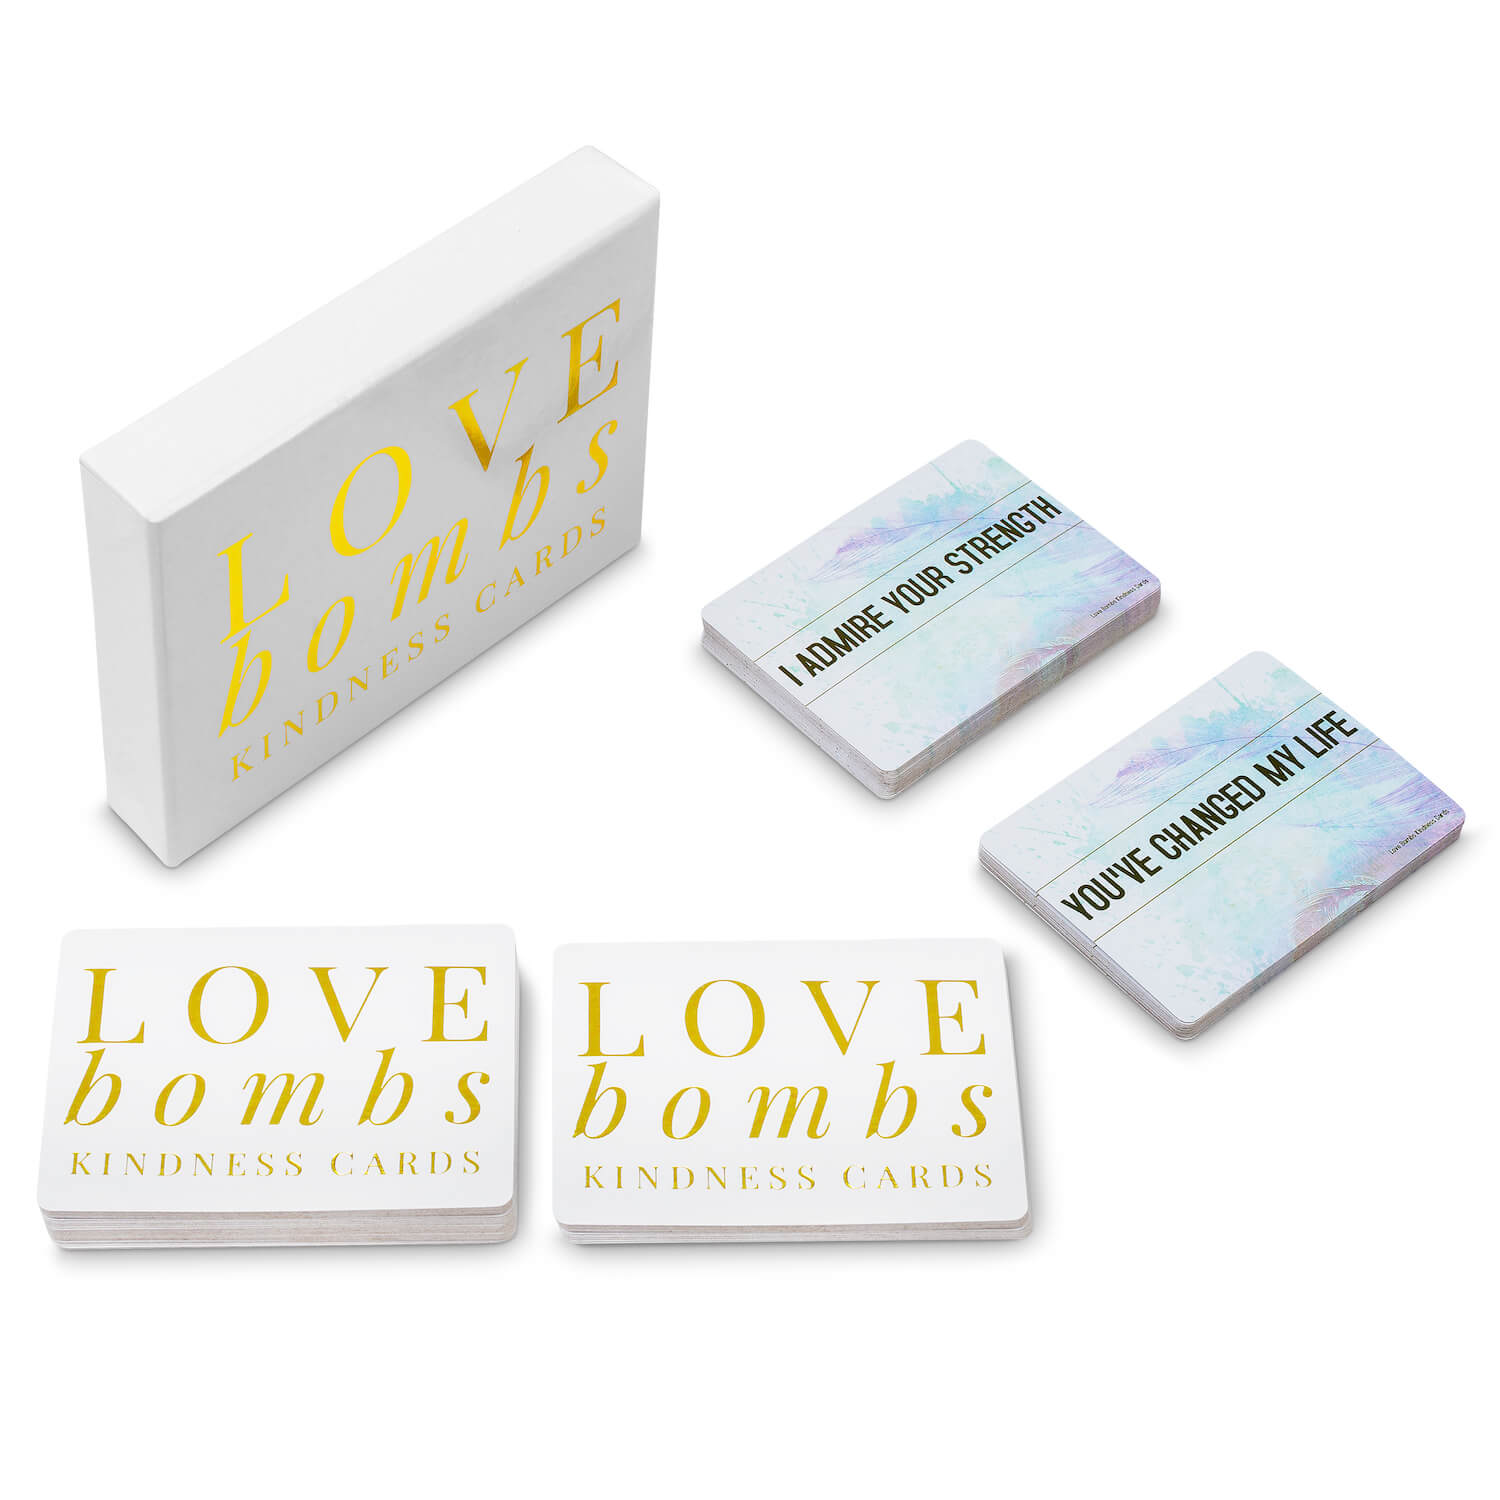 love-bombs-kindness-cards.jpg